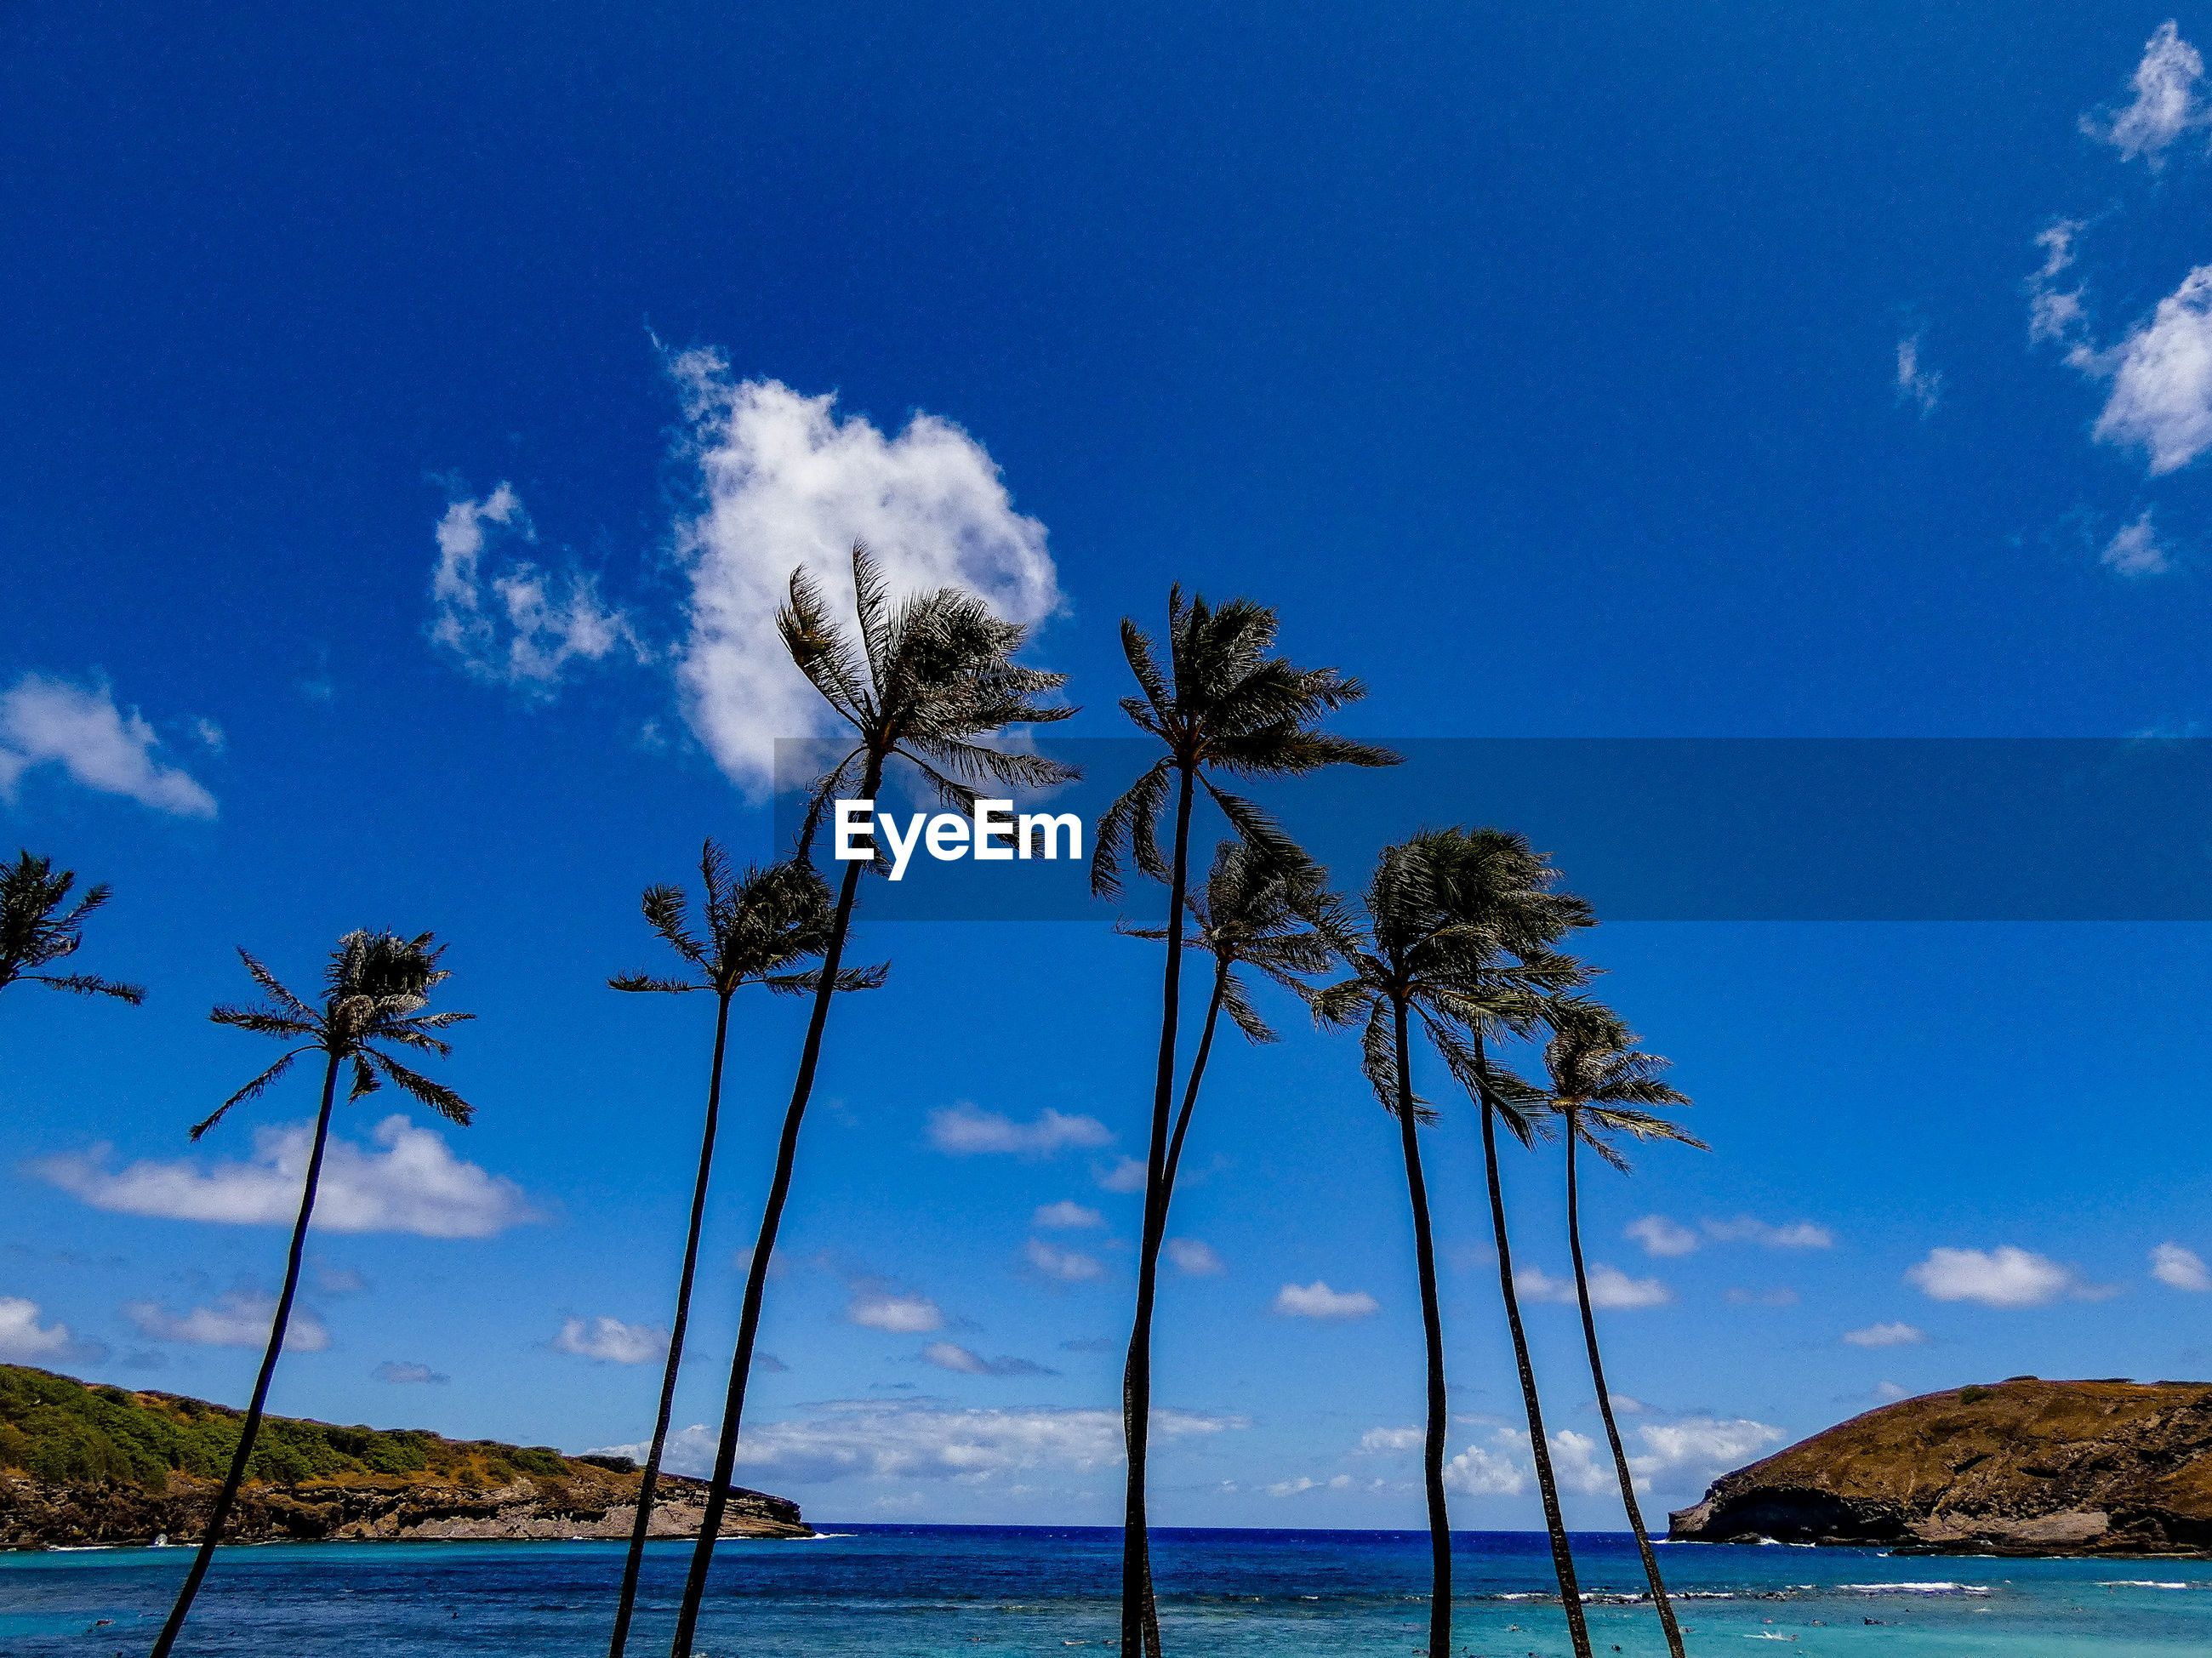 COCONUT PALM TREES ON BEACH AGAINST BLUE SKY